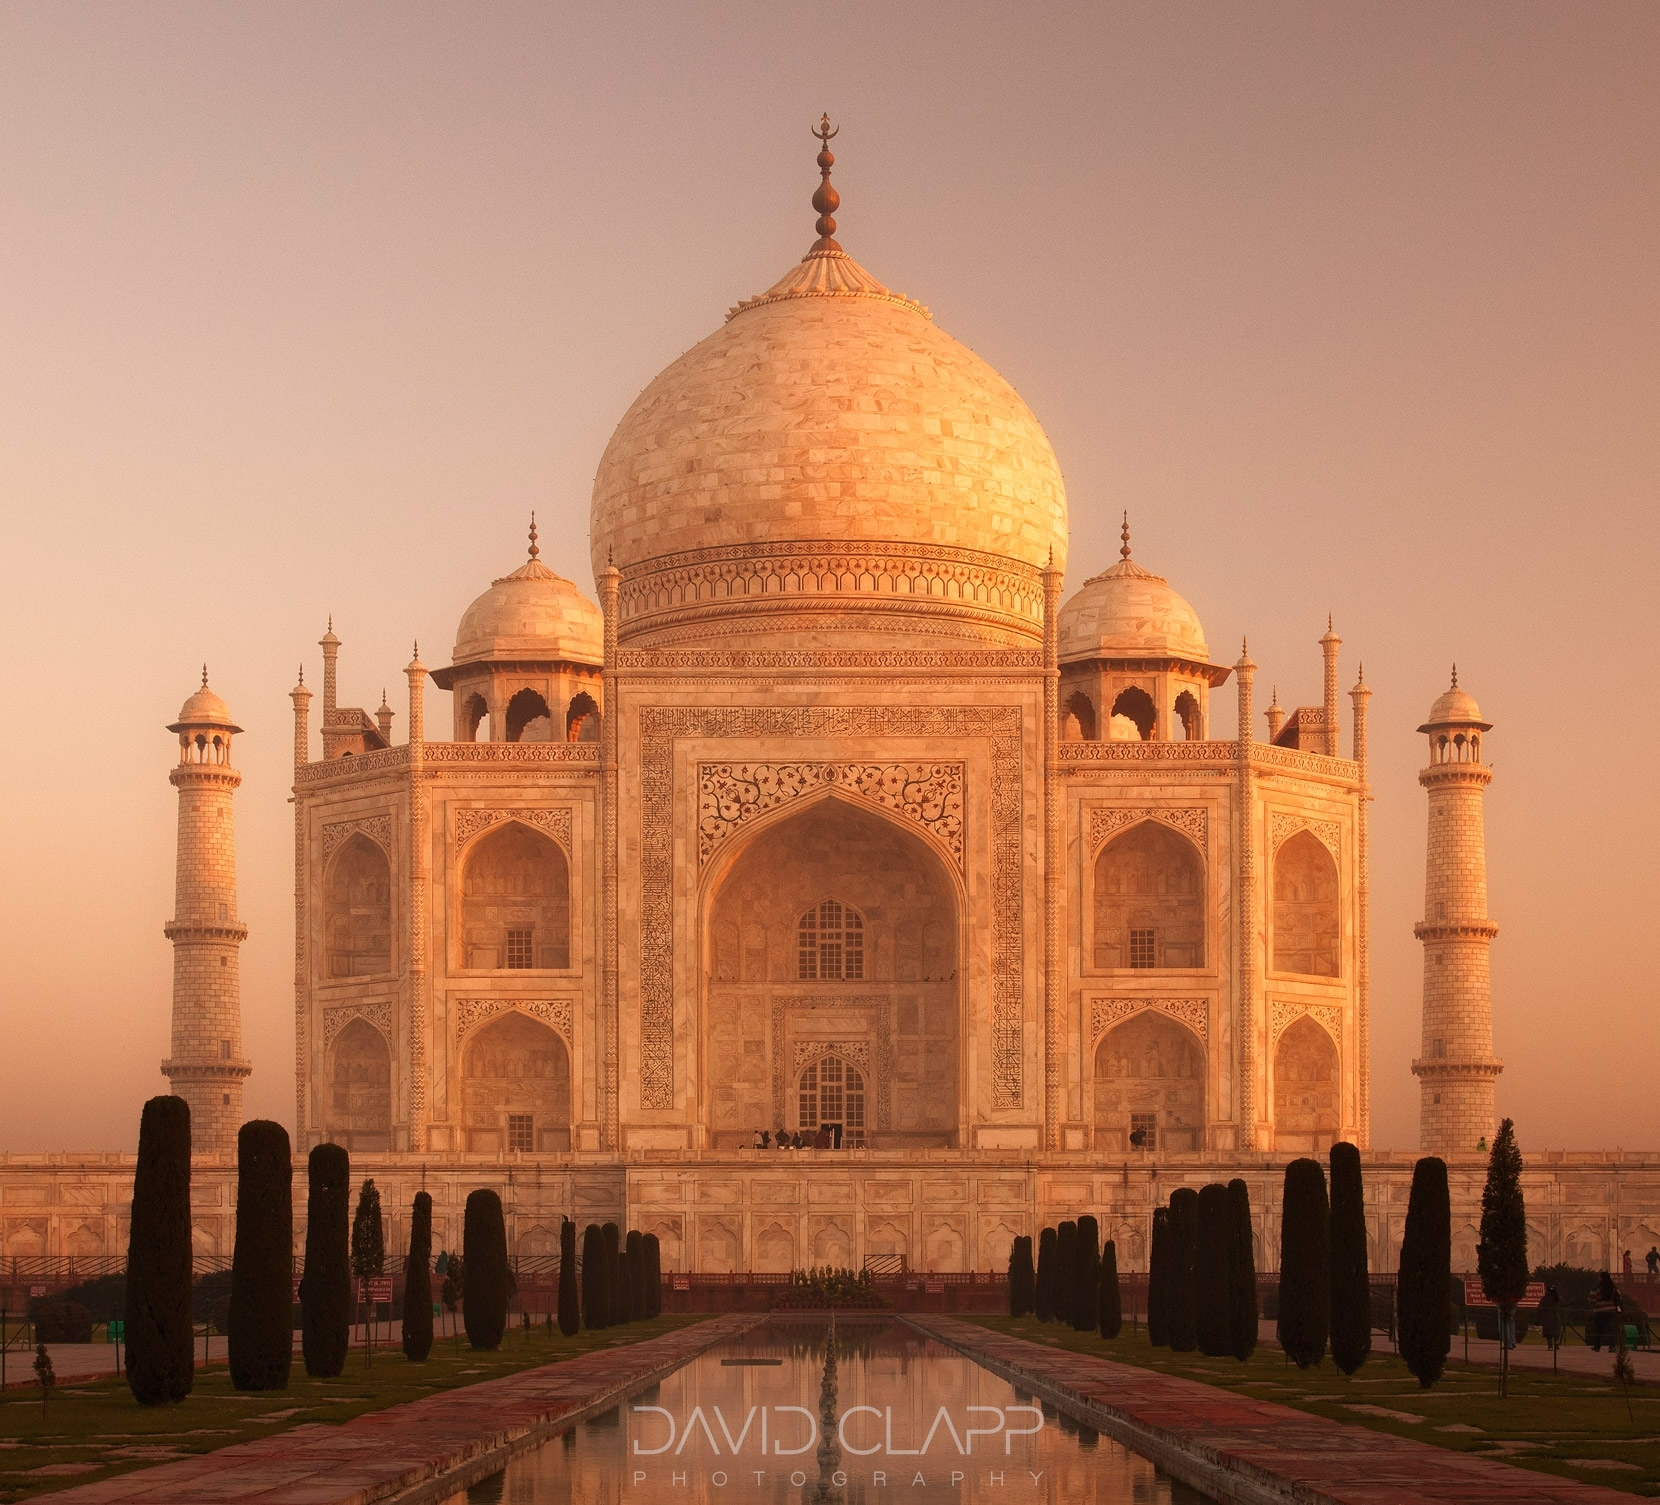 the taj mahal From 1631 to 1653, mughal emperor shah jahan had the exquisite mausoleum called the taj mahal built near agra, india for his beloved wife, mumtaz mahal.